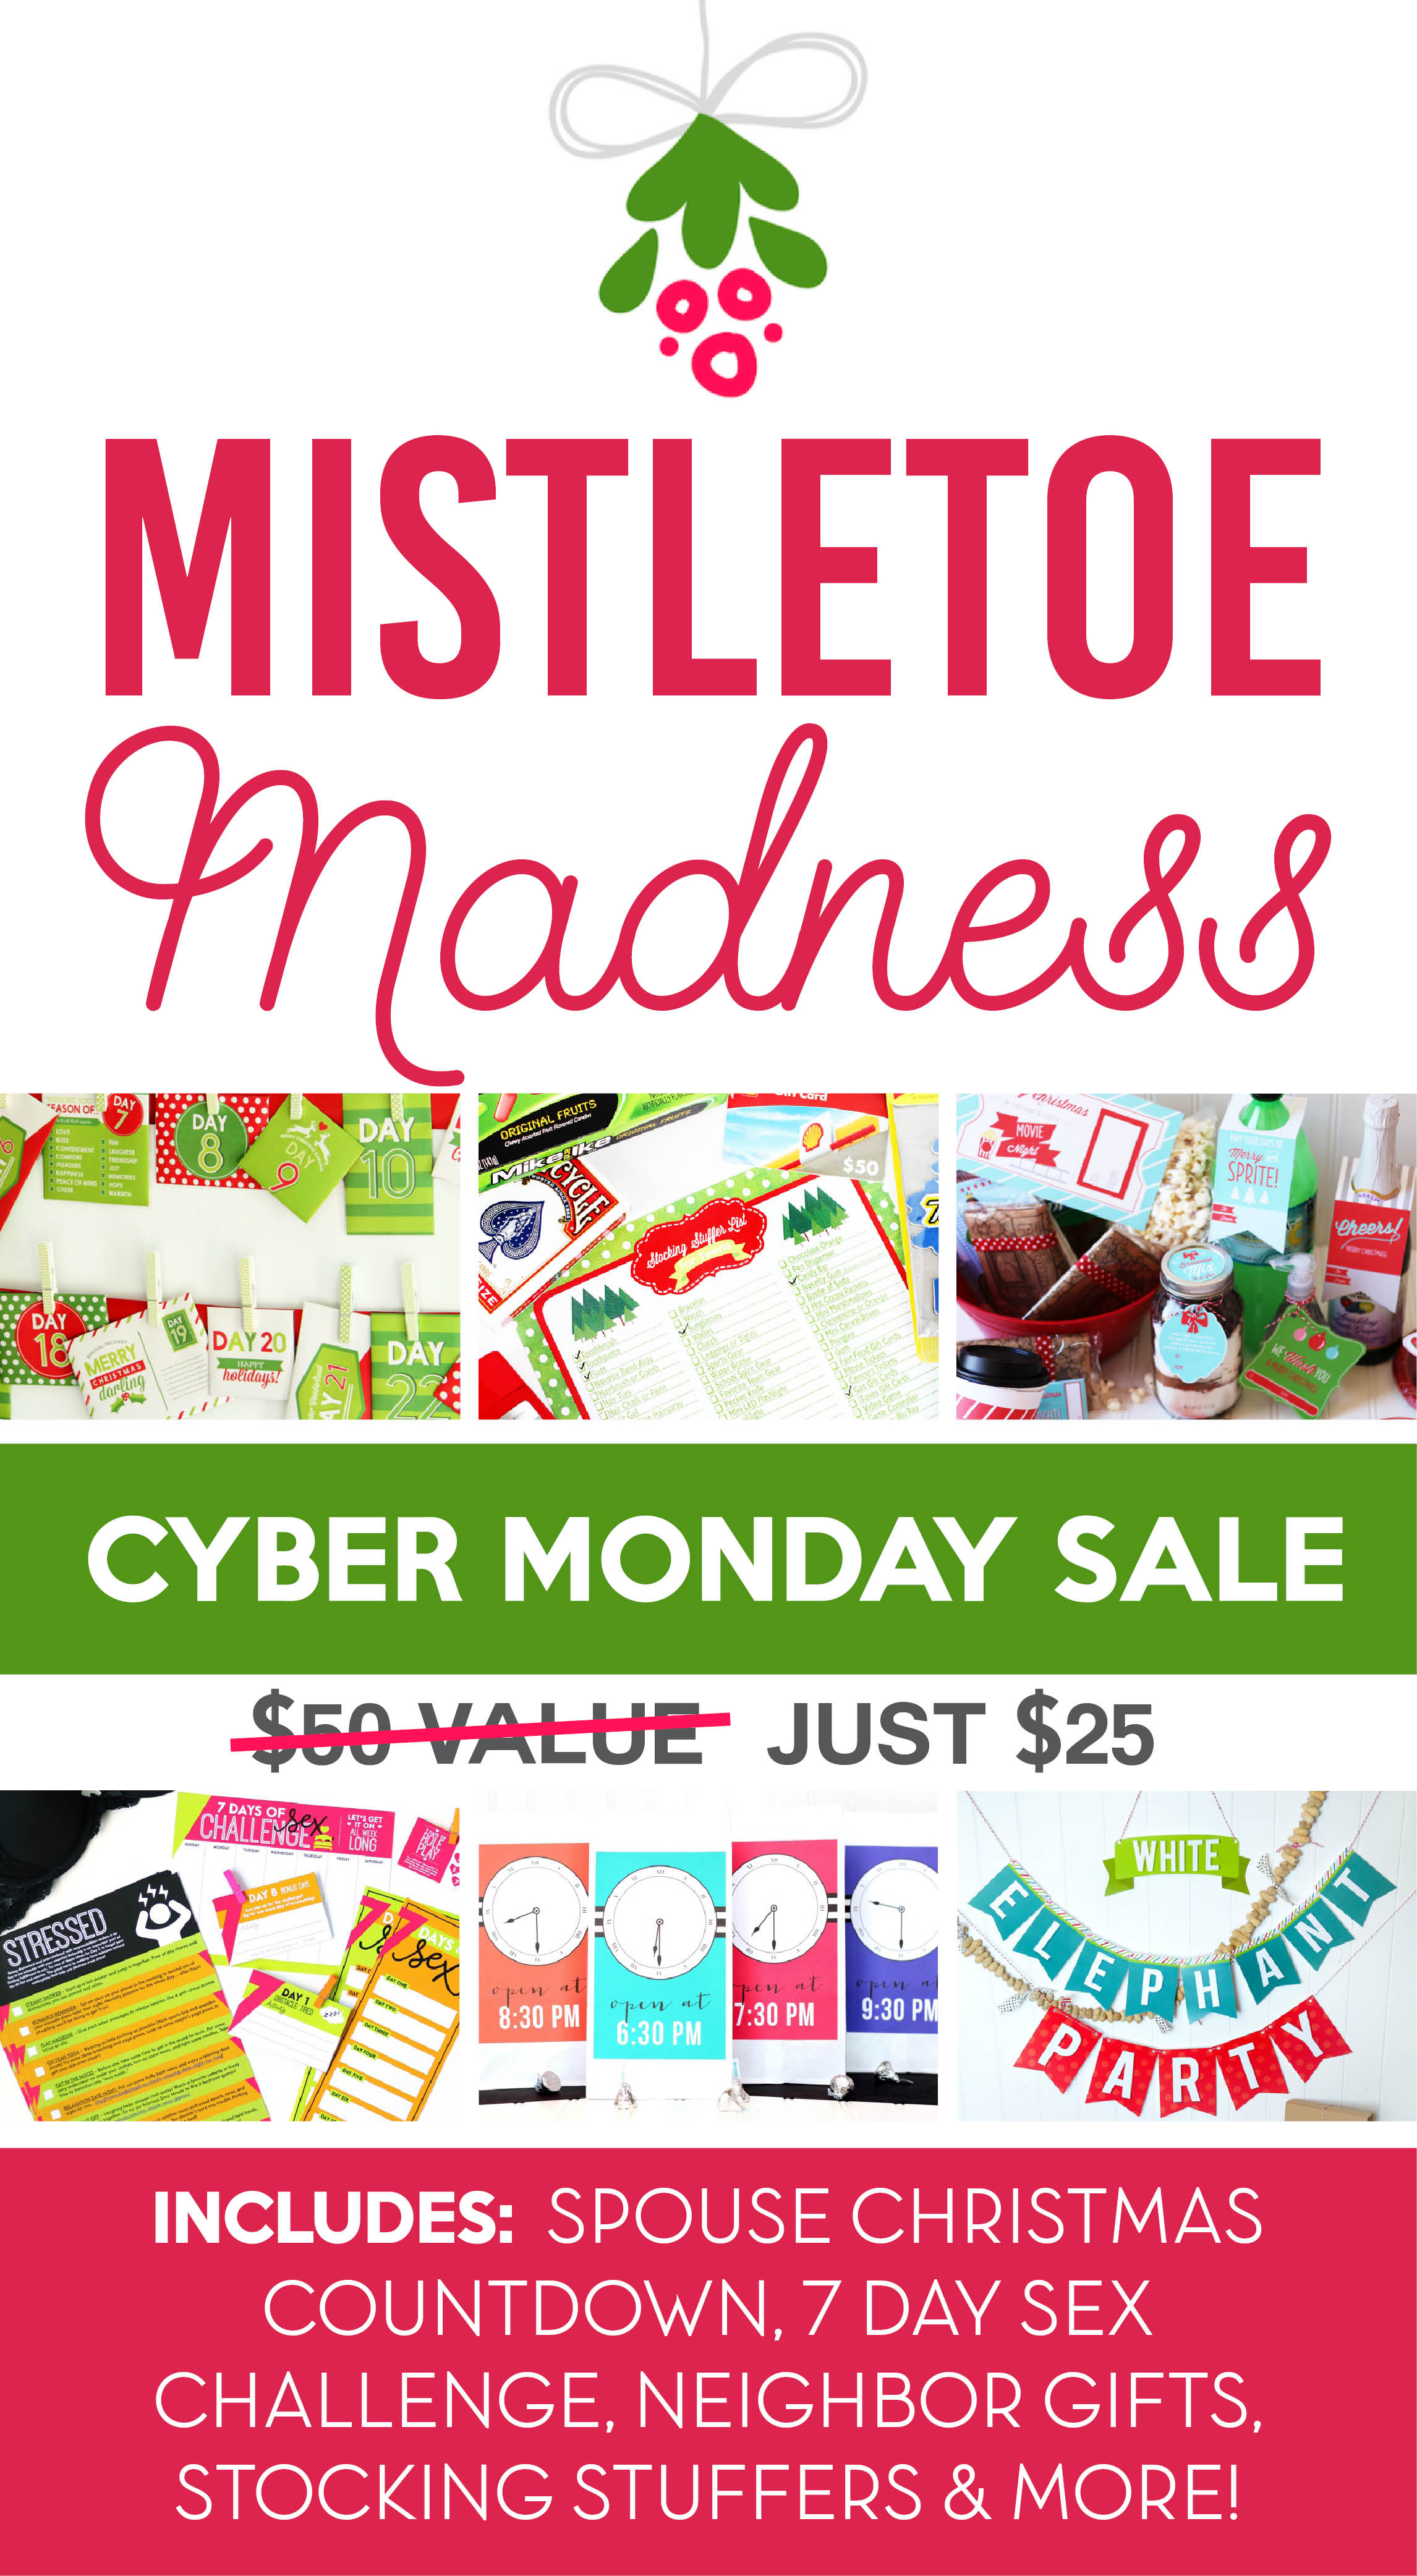 Mistletoe madness cyber monday sale the dating divas mistletoe madness cyber monday sale cybermonday buycottarizona Image collections